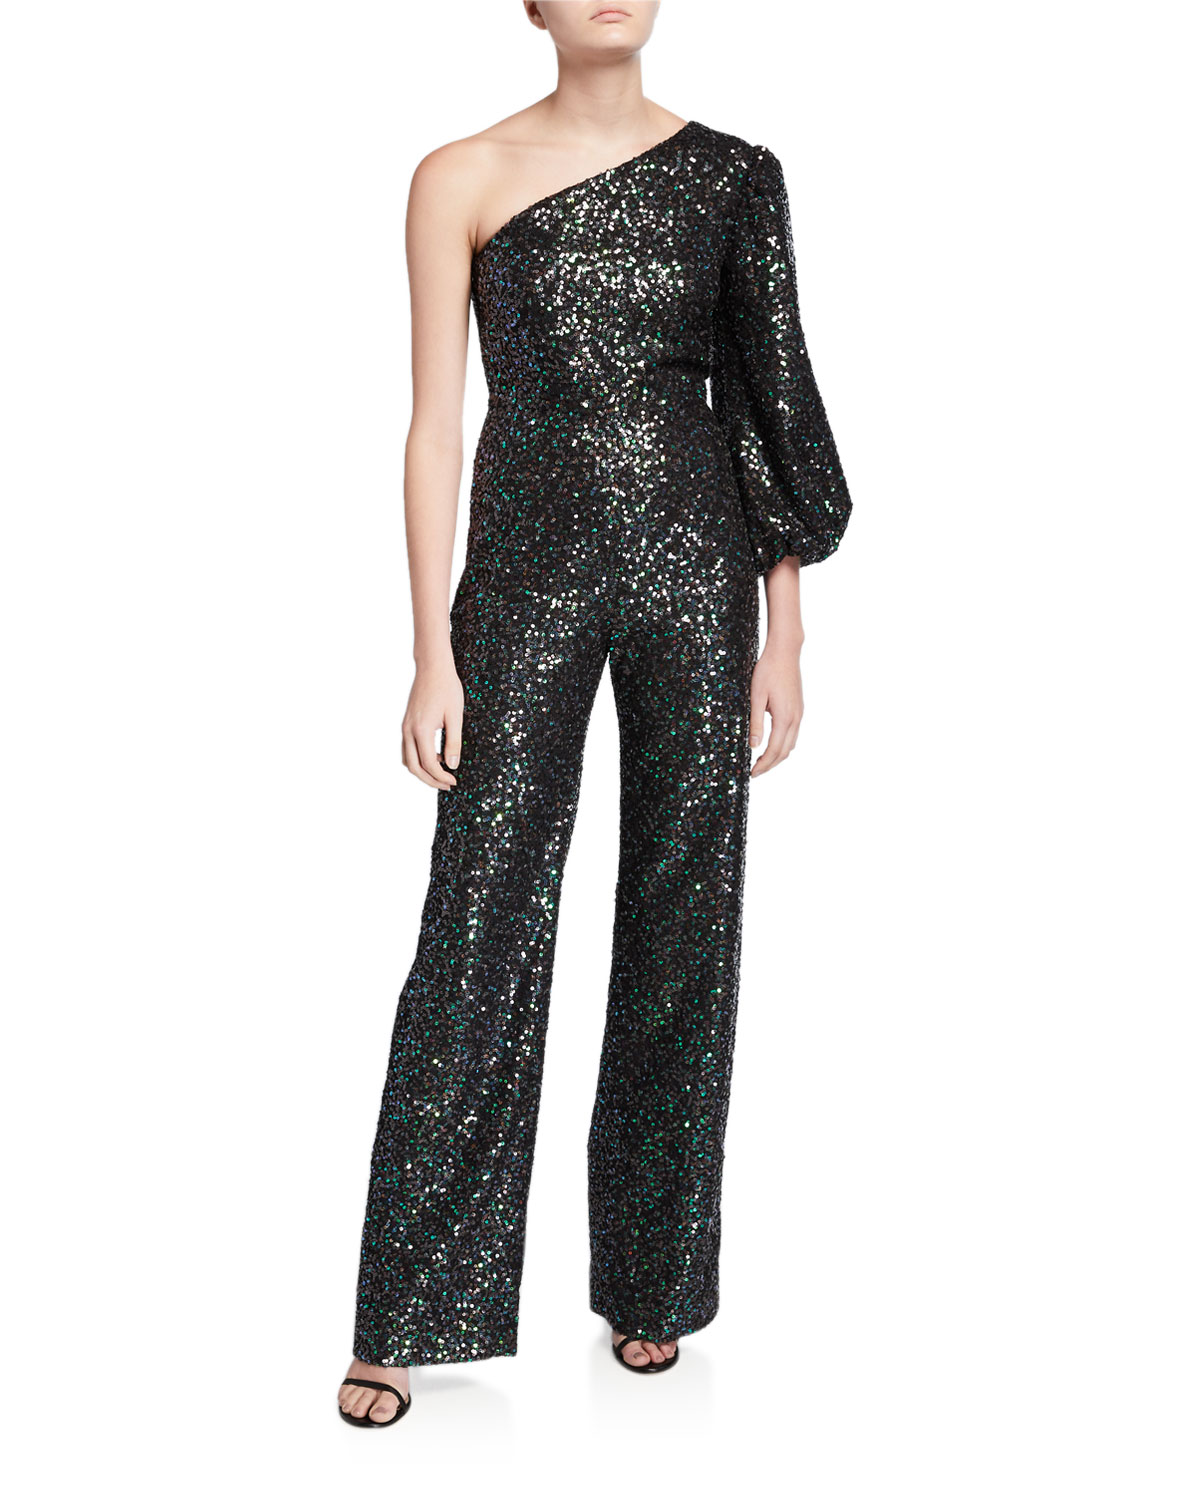 Saloni Suits LILY ONE-SHOULDER SEQUINED JUMPSUIT